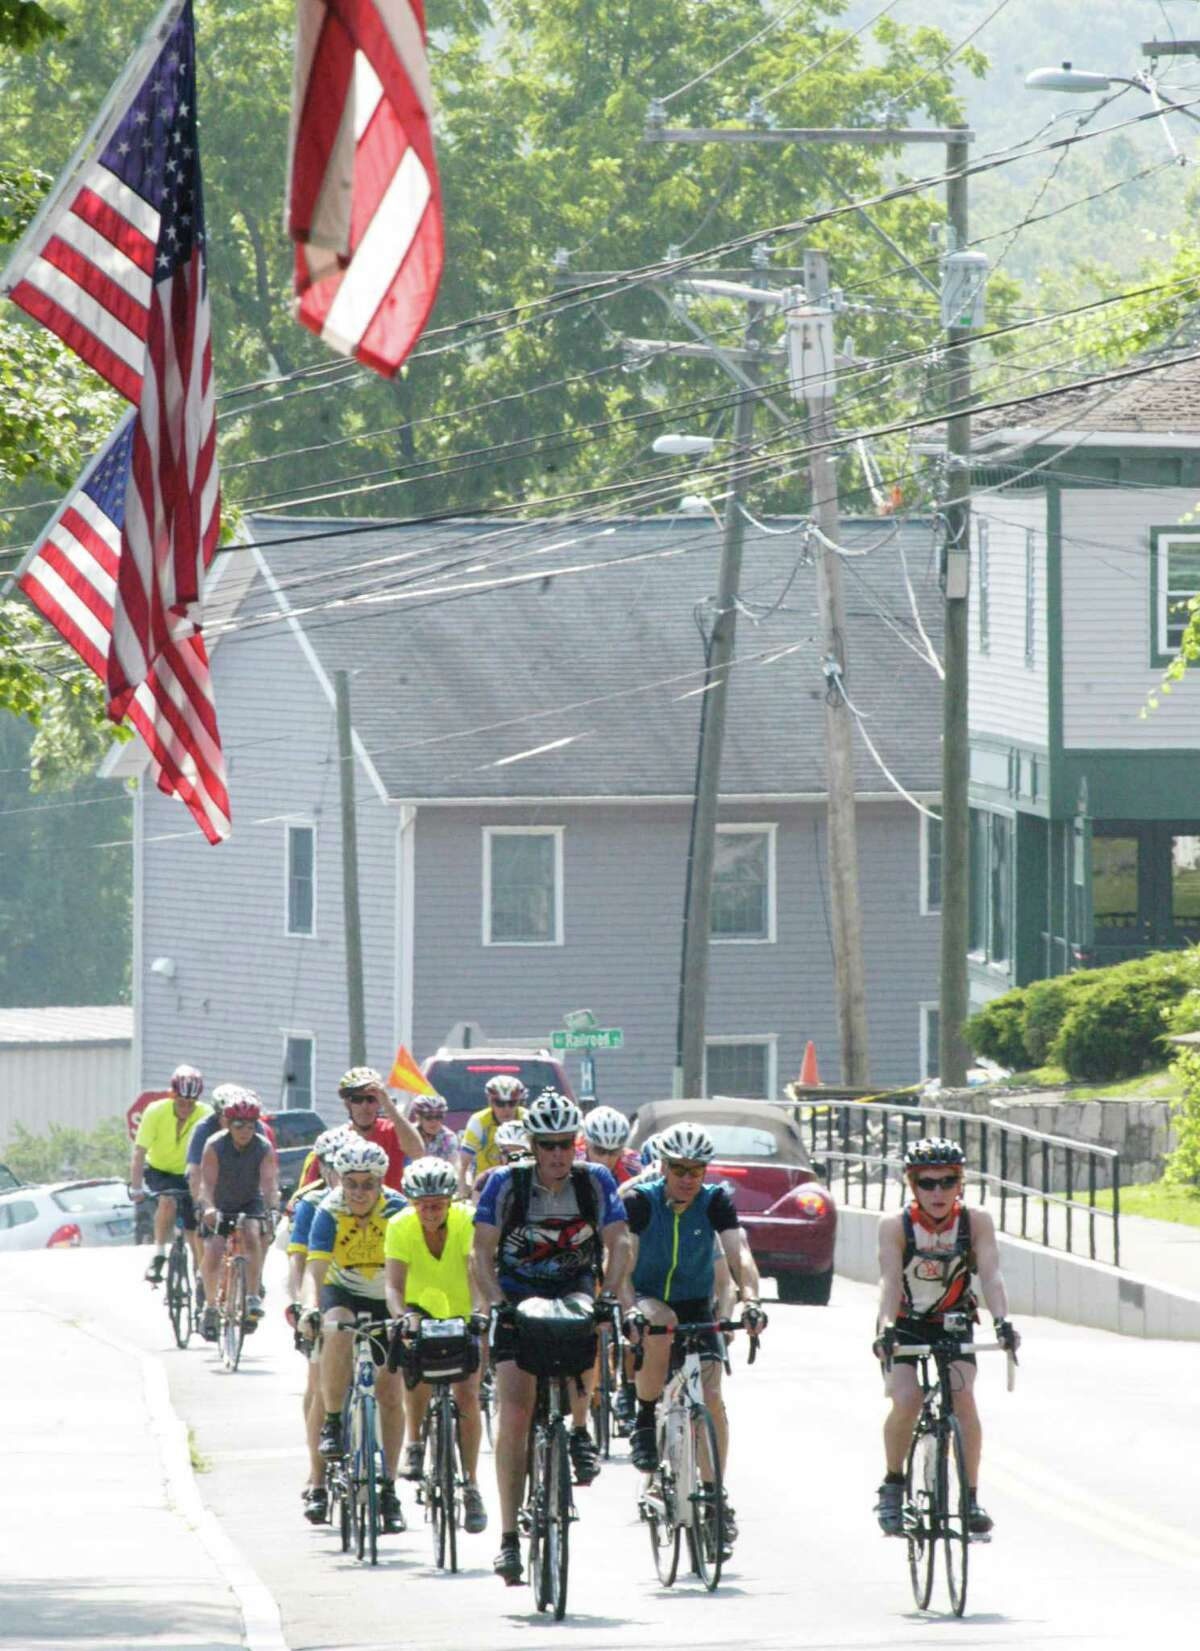 Tom O'Brien, left foreground, and his son, Jake, 16, right, lead the way Friday along Bennitt Street as cyclists complete their 289-mile Greenway ride from near Burlington, Vermont to New Milford. July 25, 2014